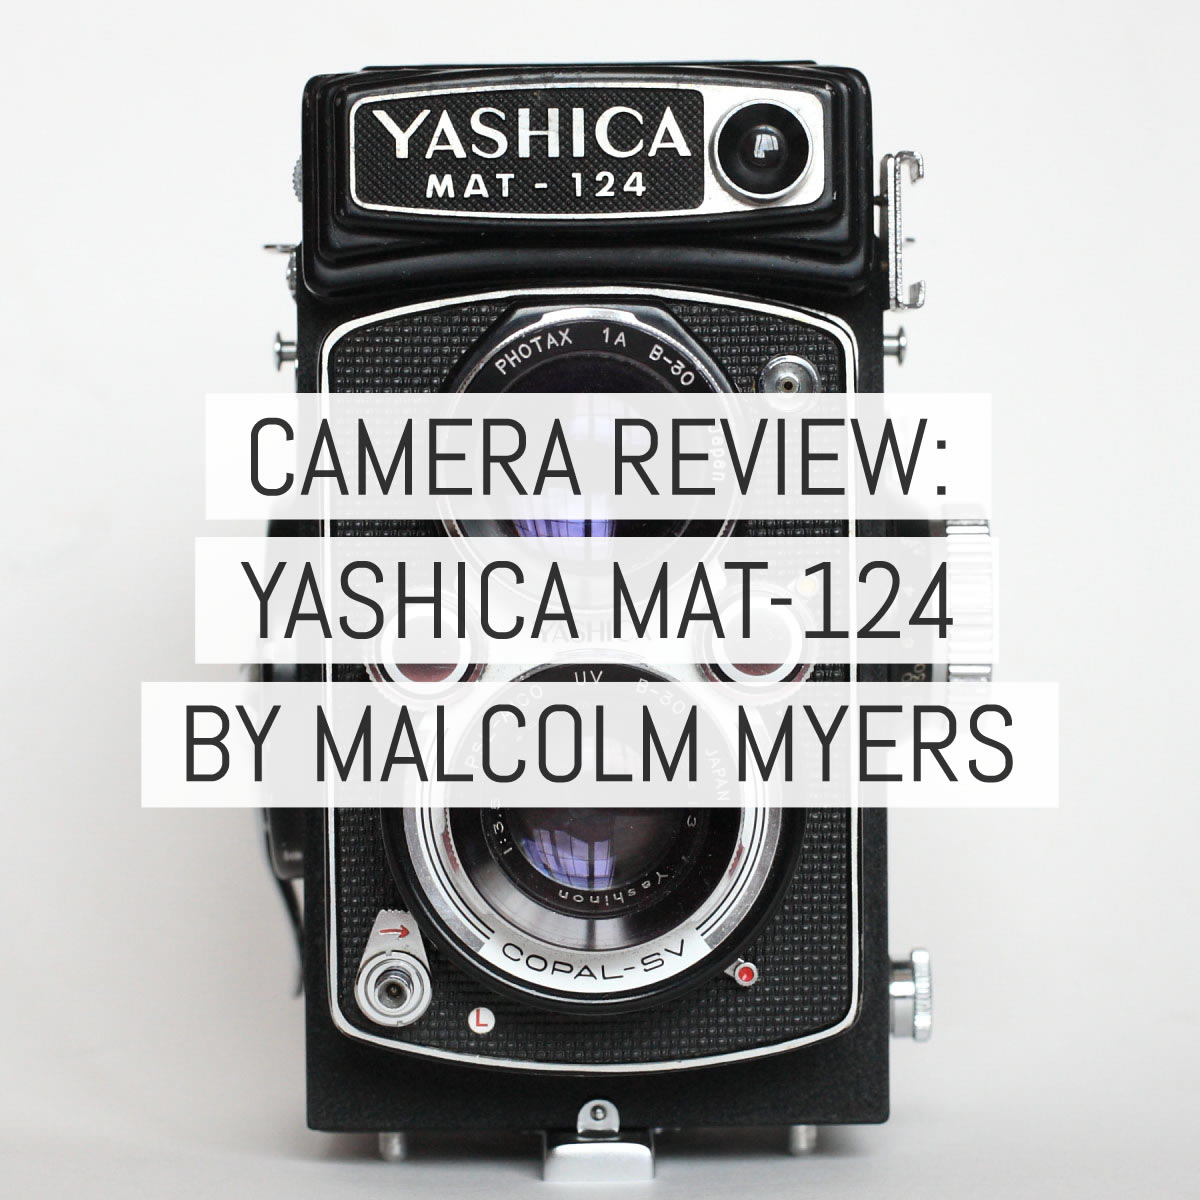 Camera review: the Yashica Mat 124 - by Malcolm Myers